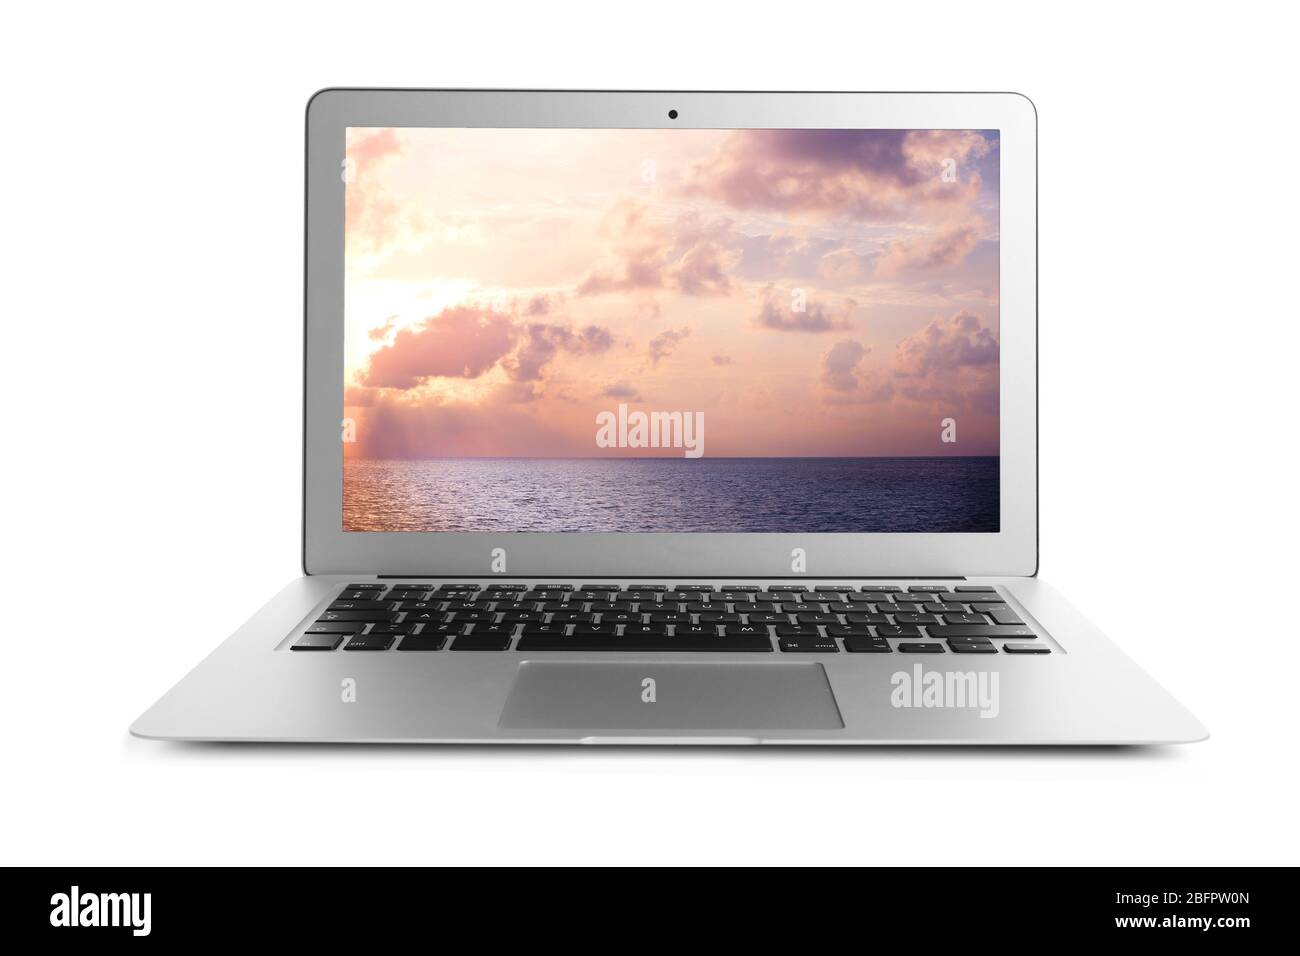 Laptop And Wallpaper Of Landscape On Screen White Background Stock Photo Alamy